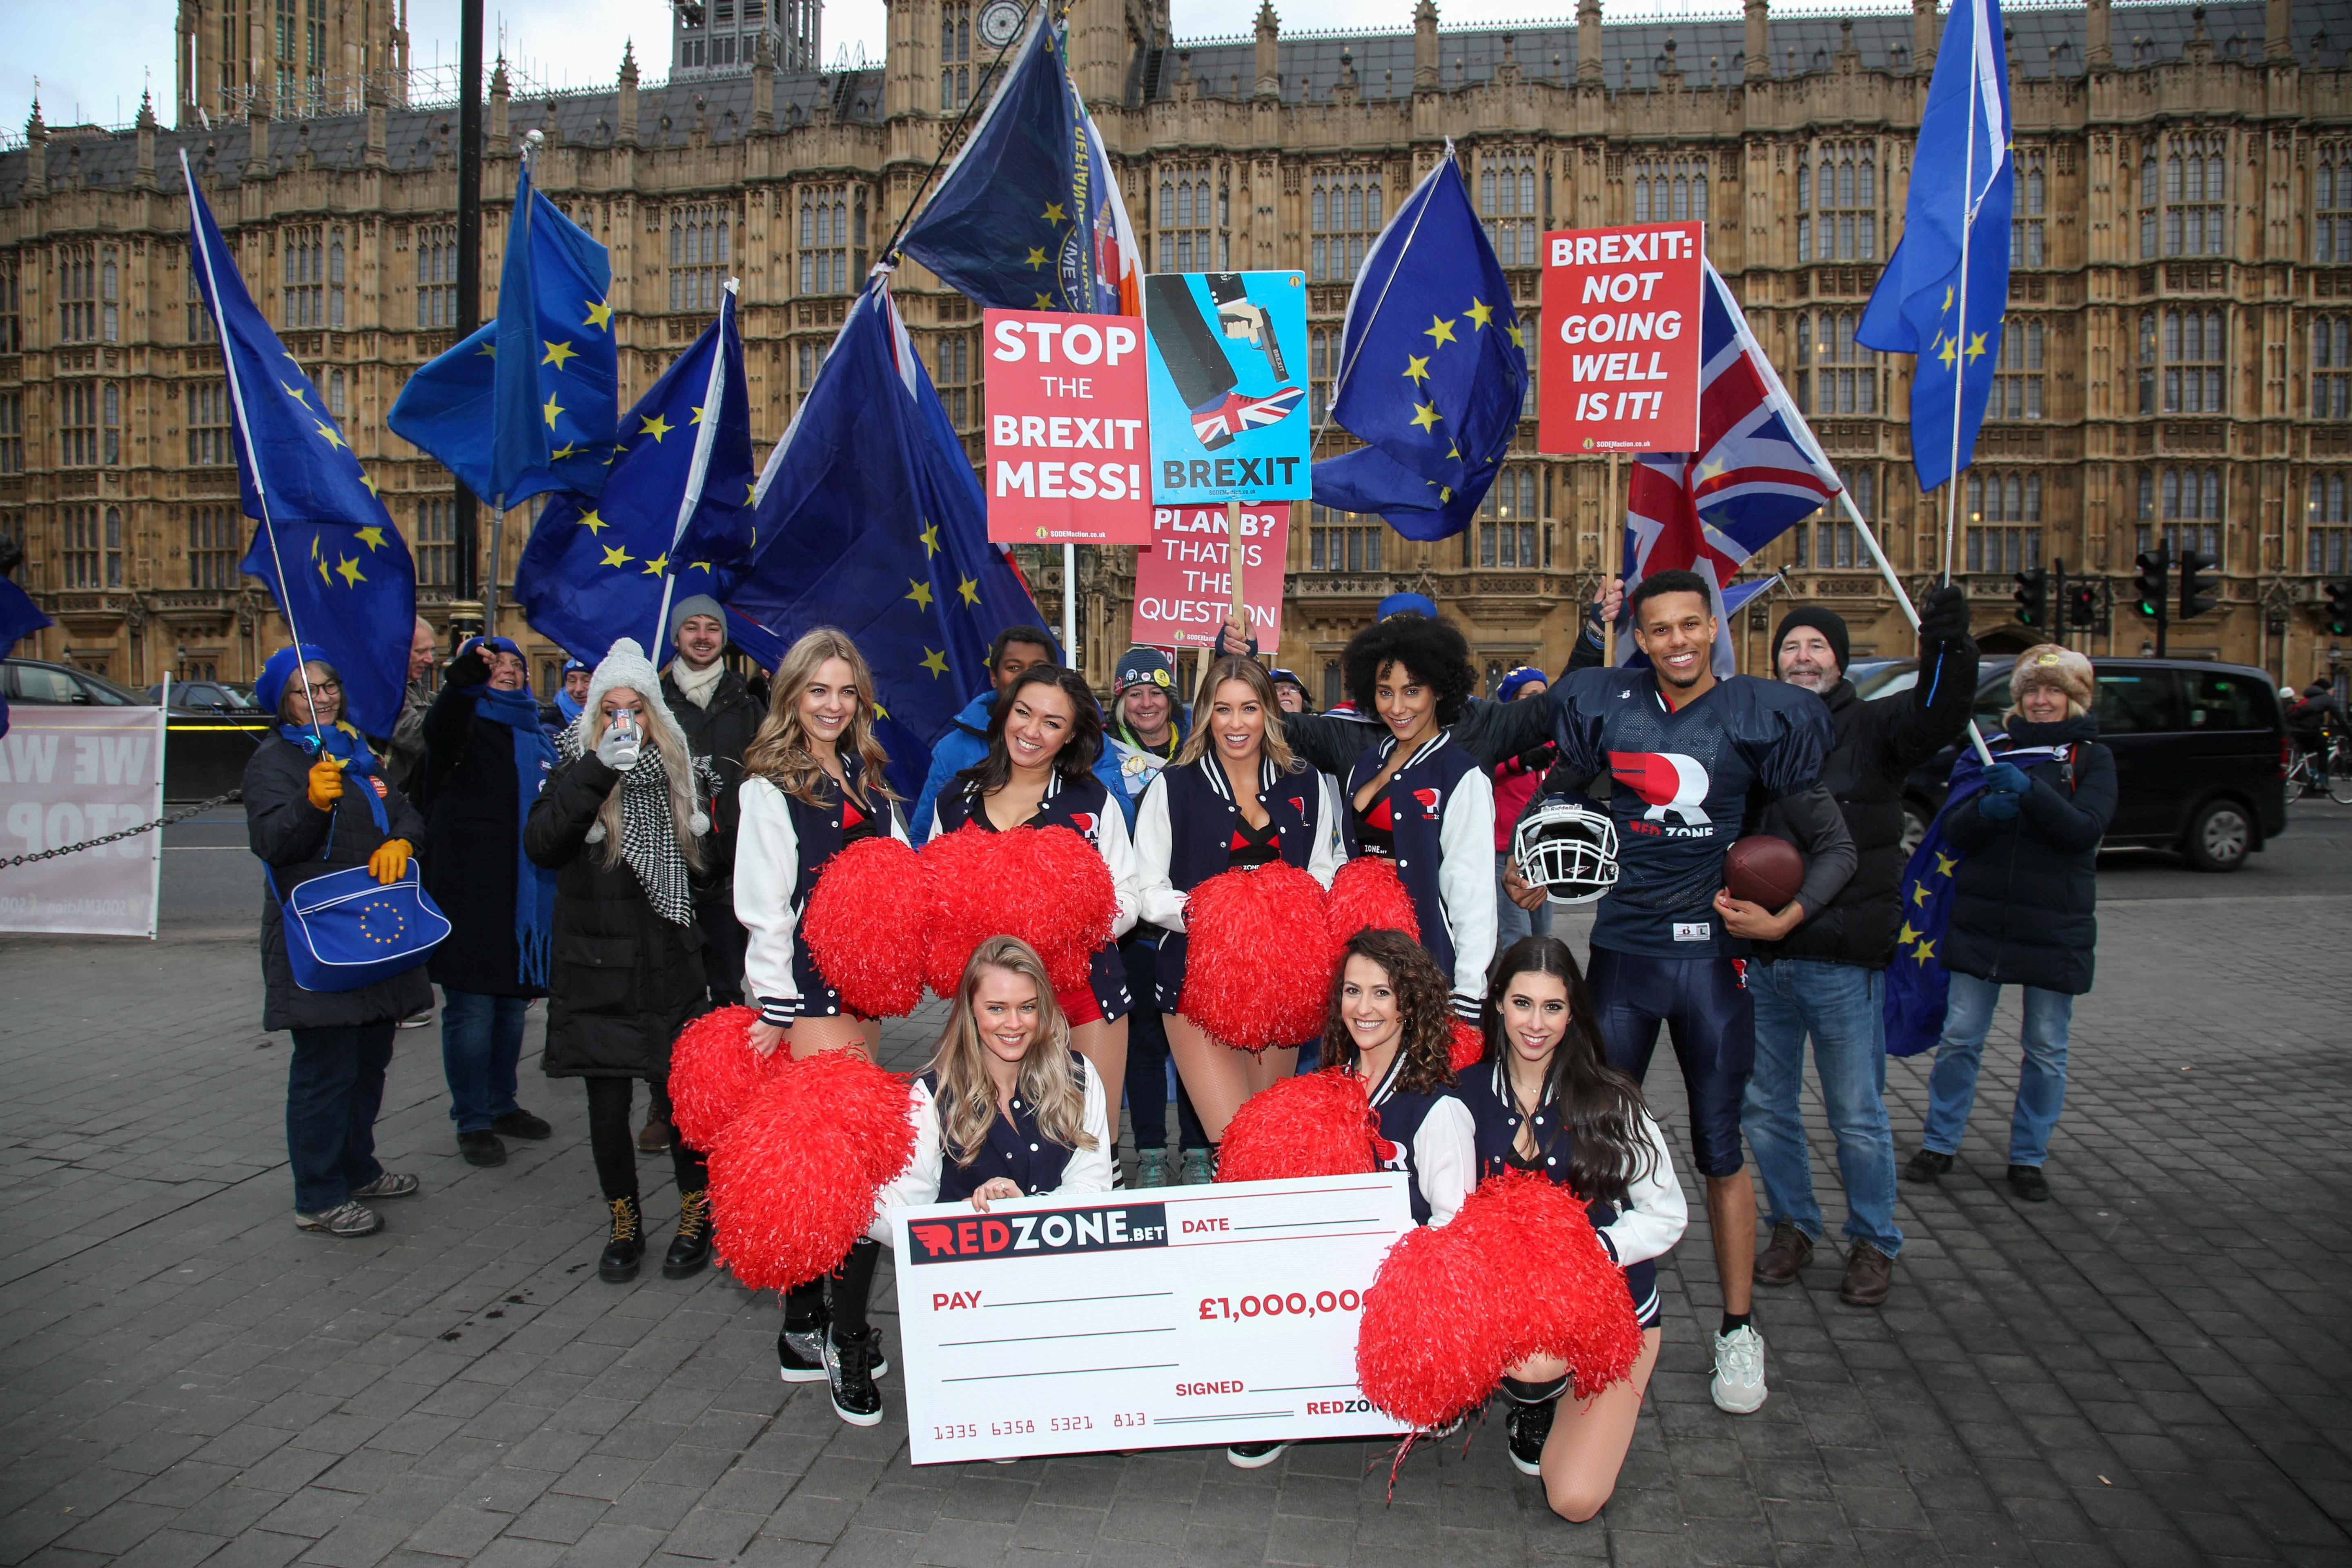 Cheerleaders interrupt an anti-Brexit campaign while performing in London